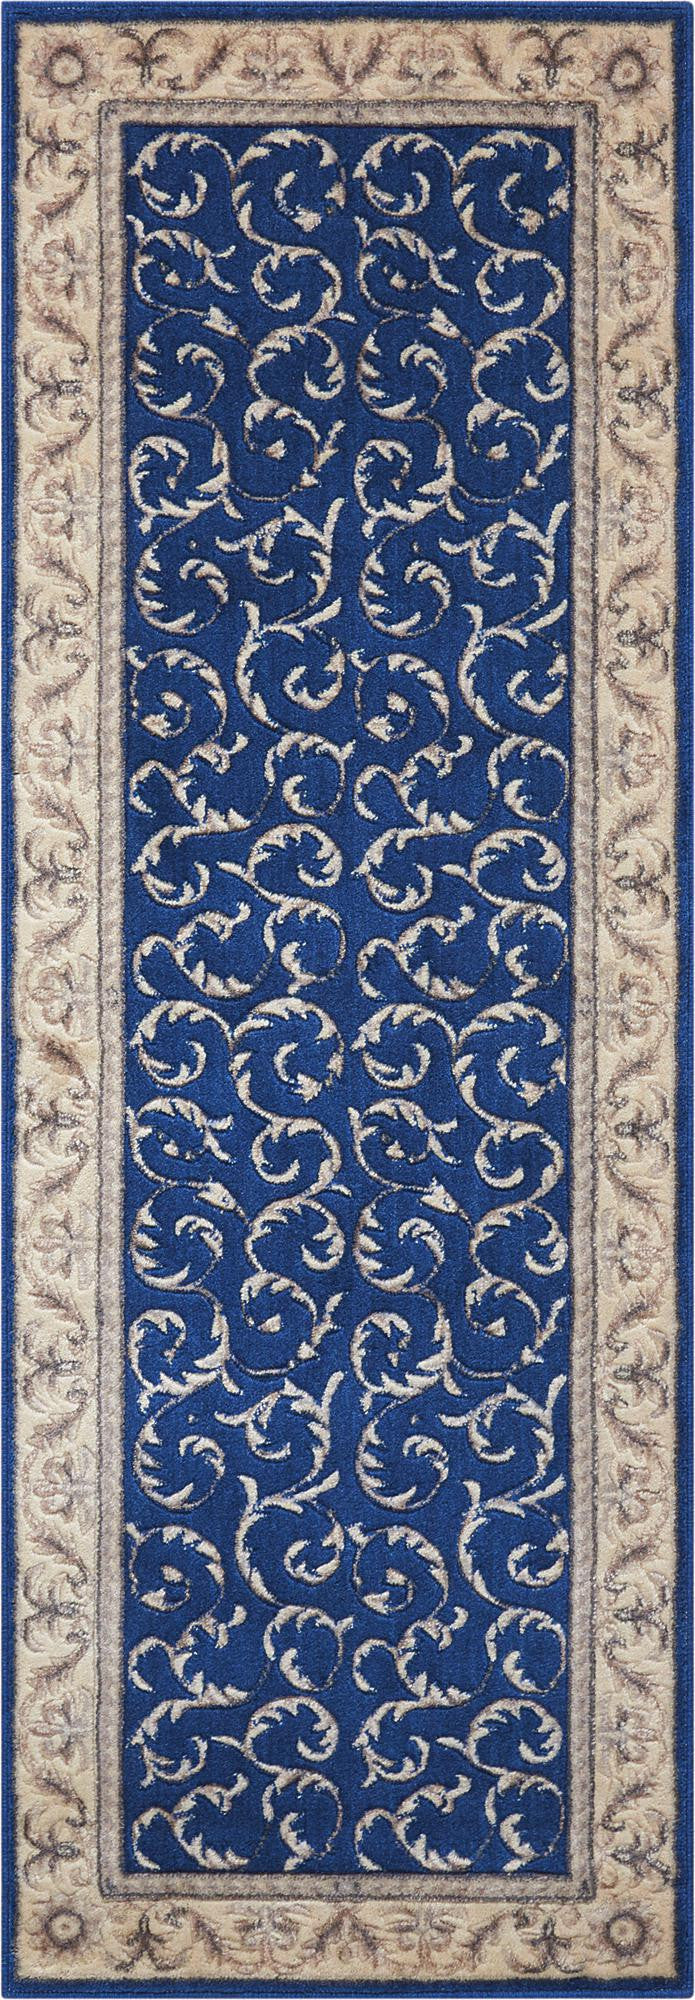 Nourison Somerset Navy Area Rug ST02 NAVY